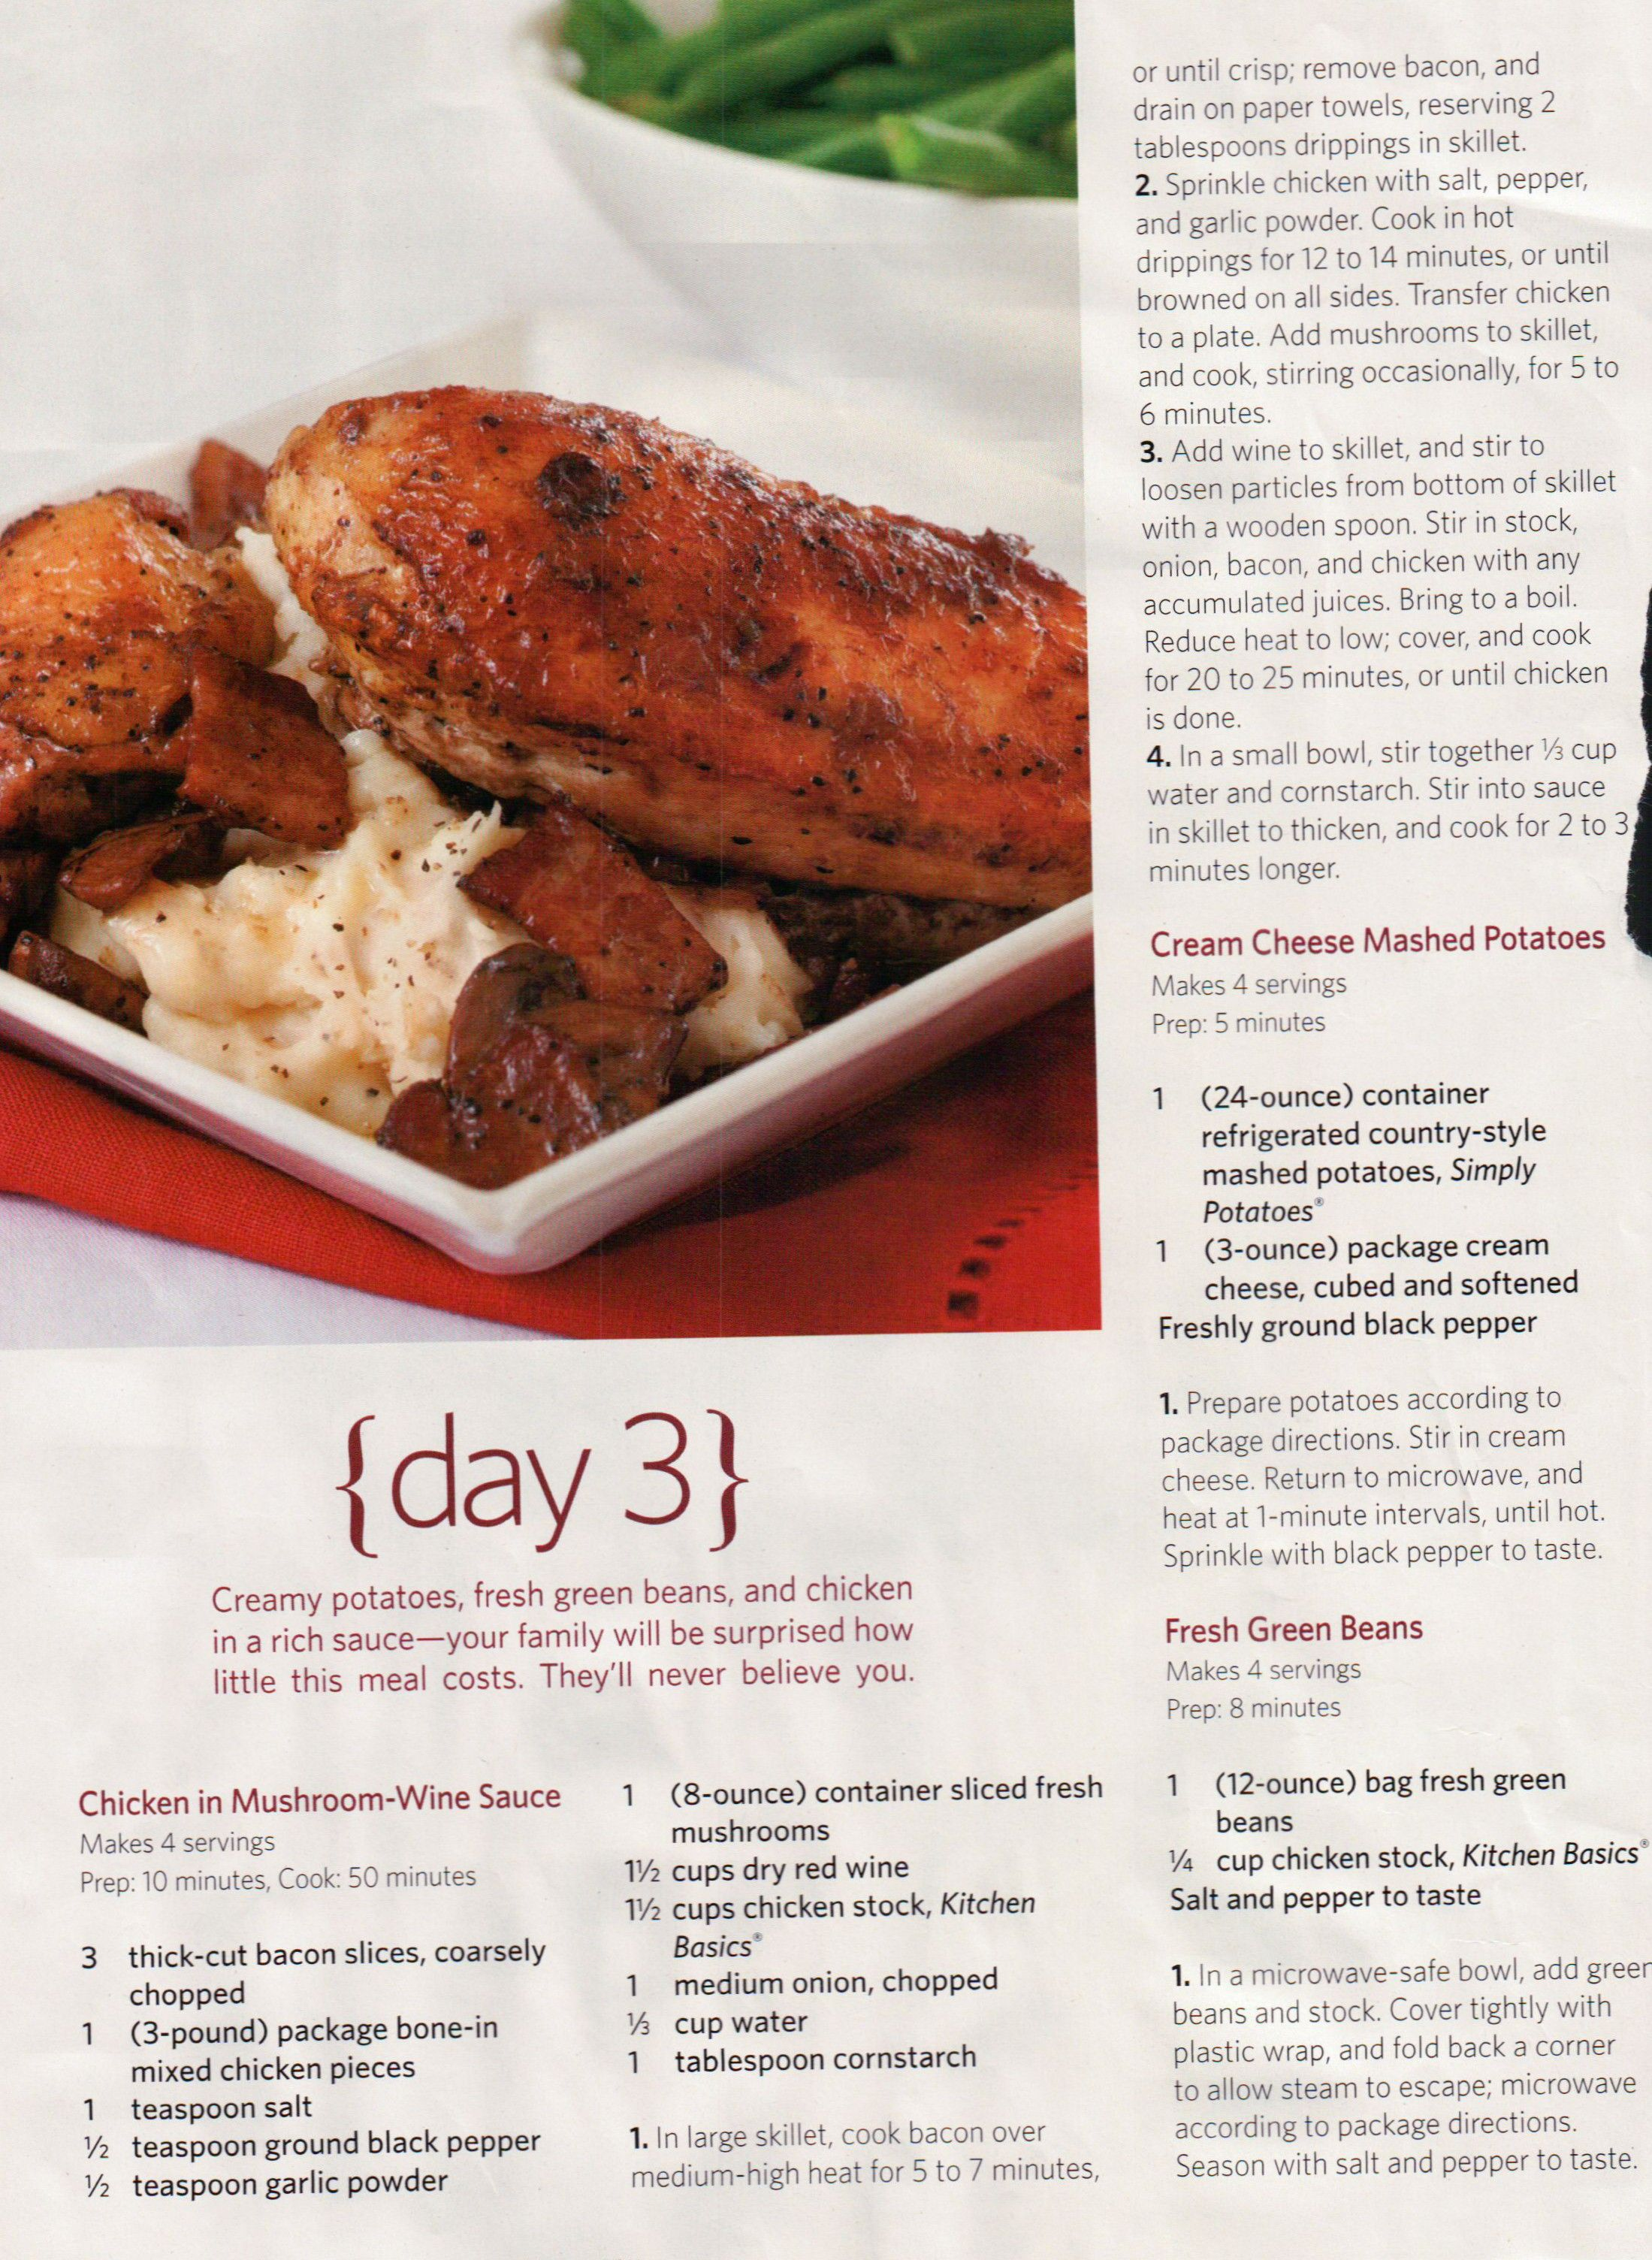 Chicken in Mushroom Wine Sauce.  Includes recipes for sides as well: cream cheese mashed potatoes and fresh green beans.